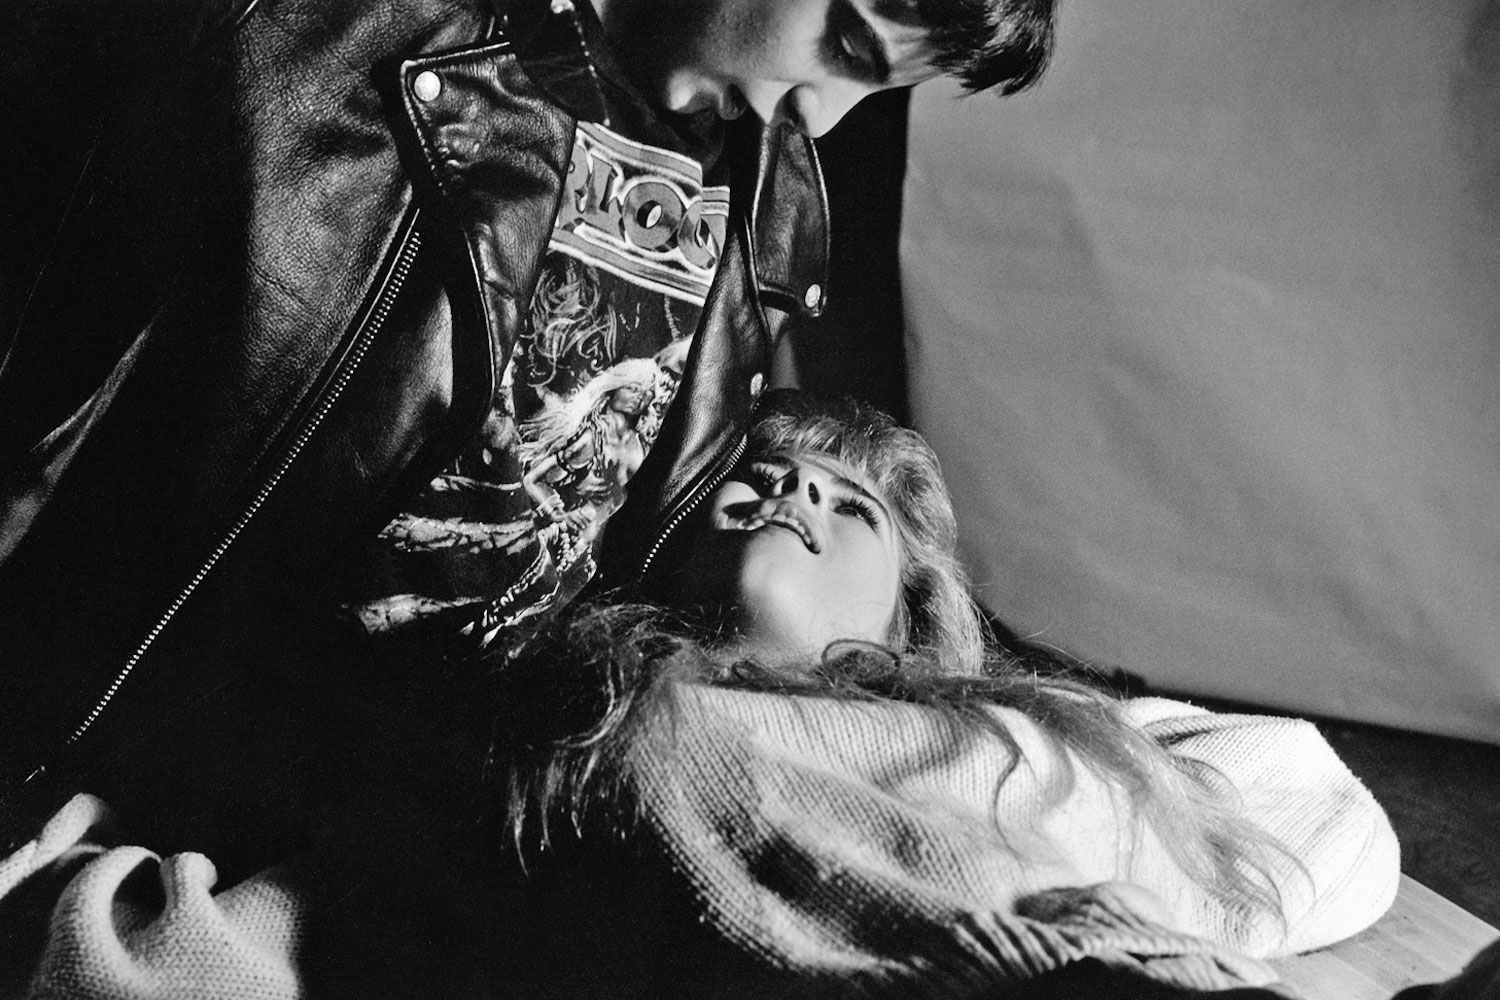 Anthony and Joanne, 1988